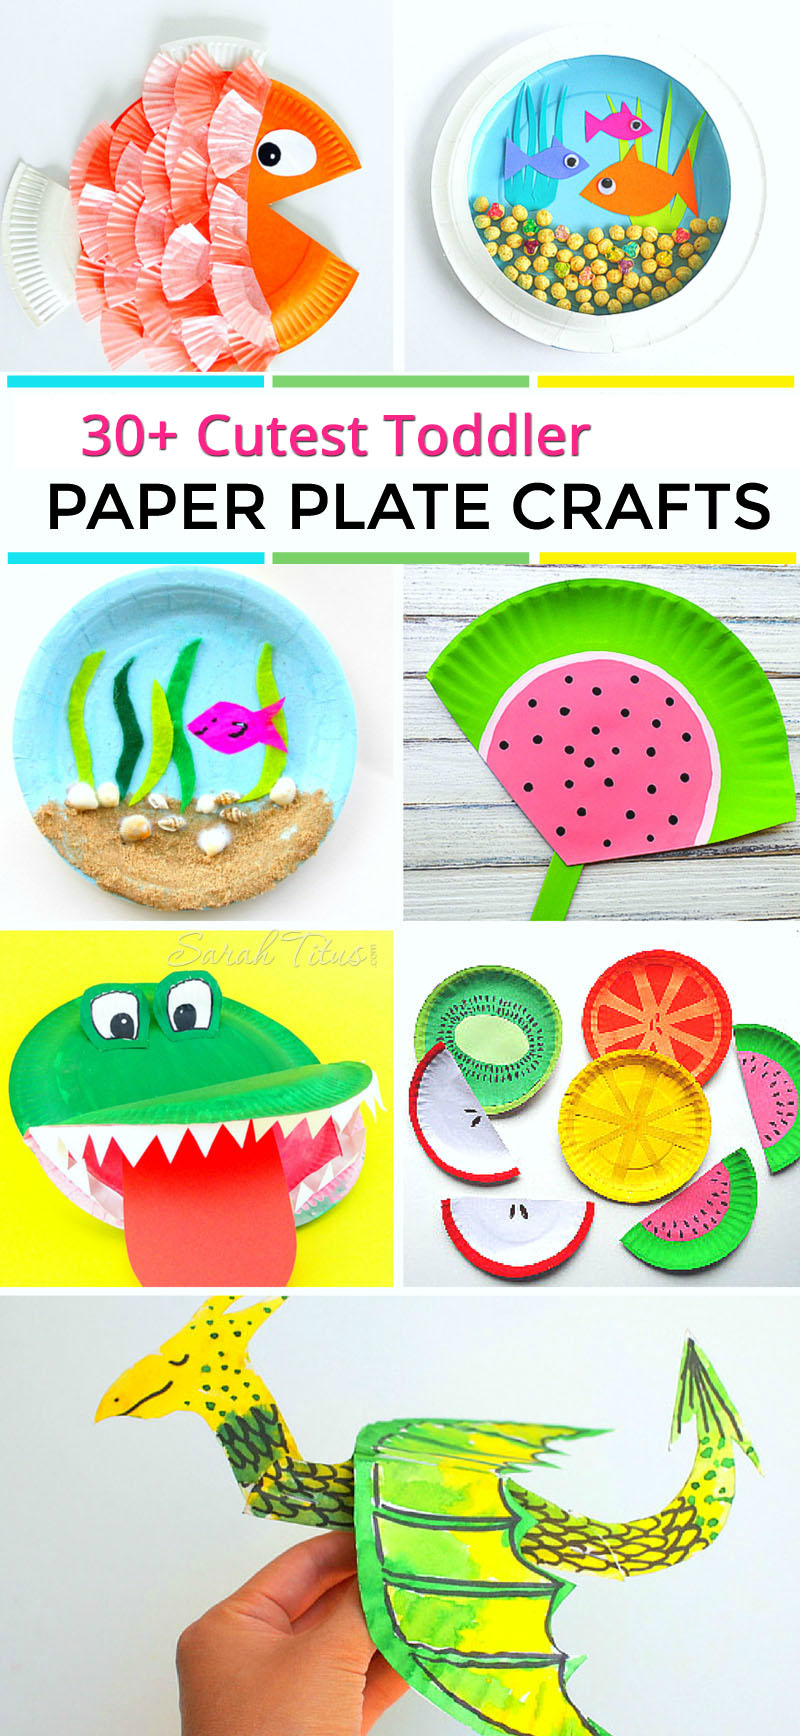 Cutest Toddler Paper Plate Crafts